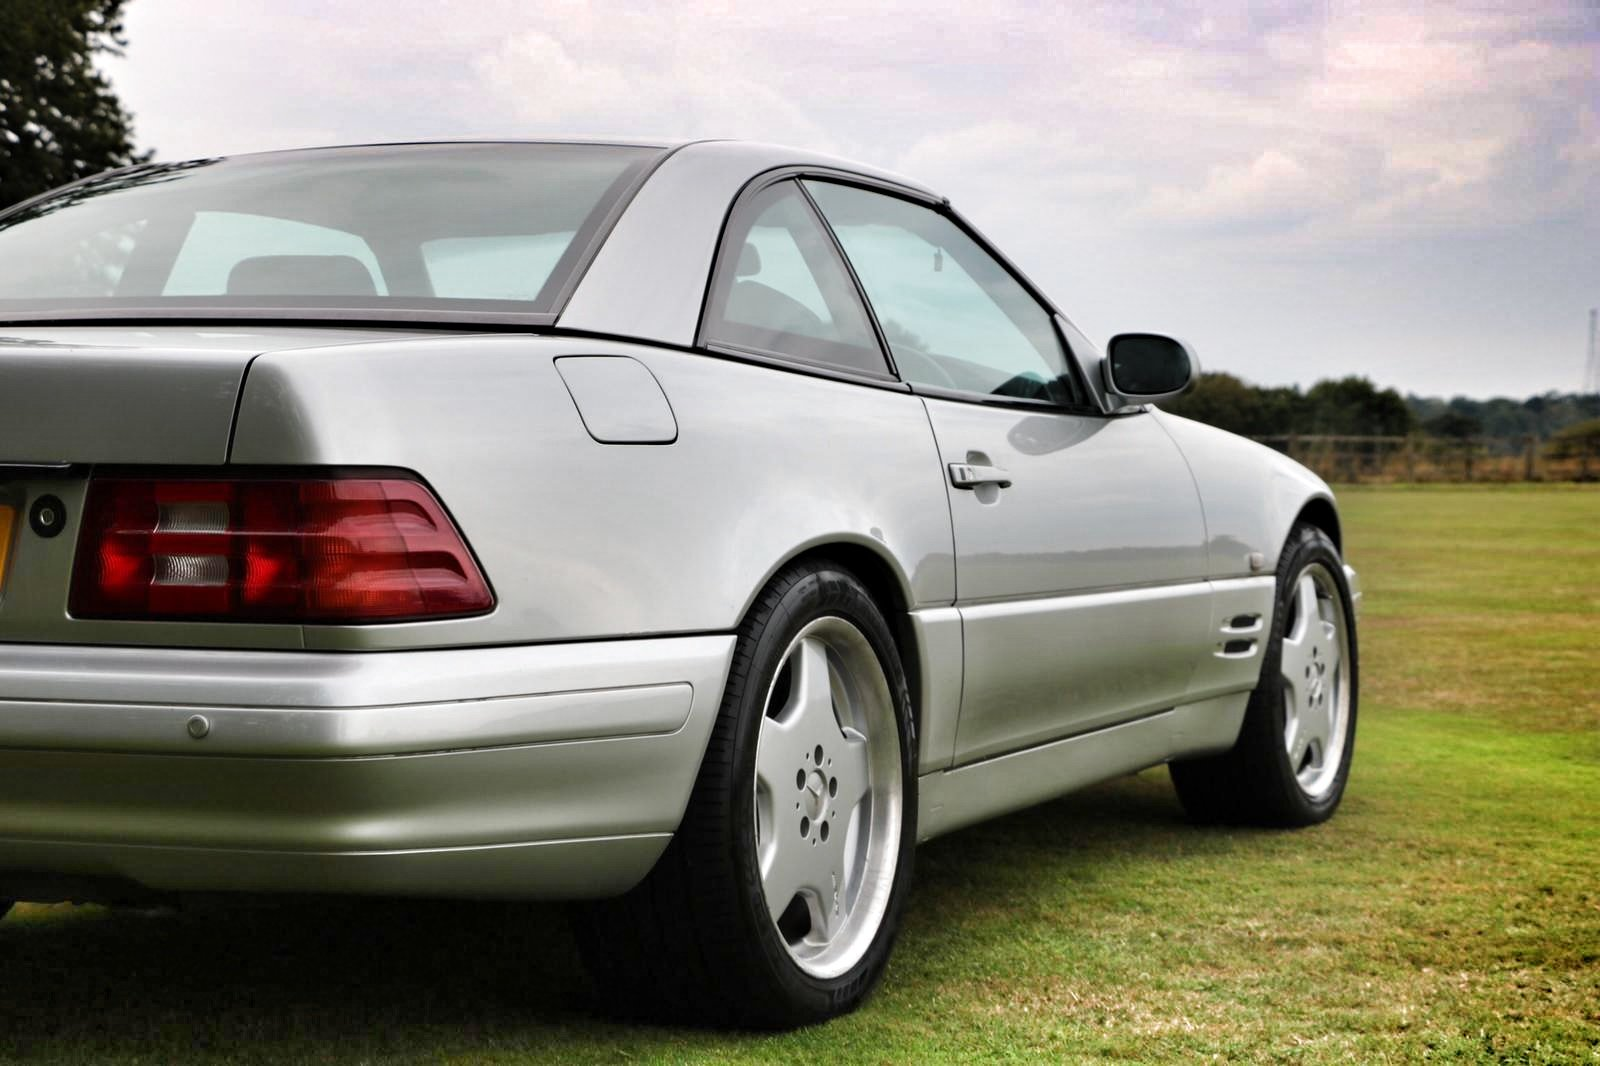 1999 Mercedes SL280 R129 Panoramic Roof, Low miles For Sale (picture 2 of 6)